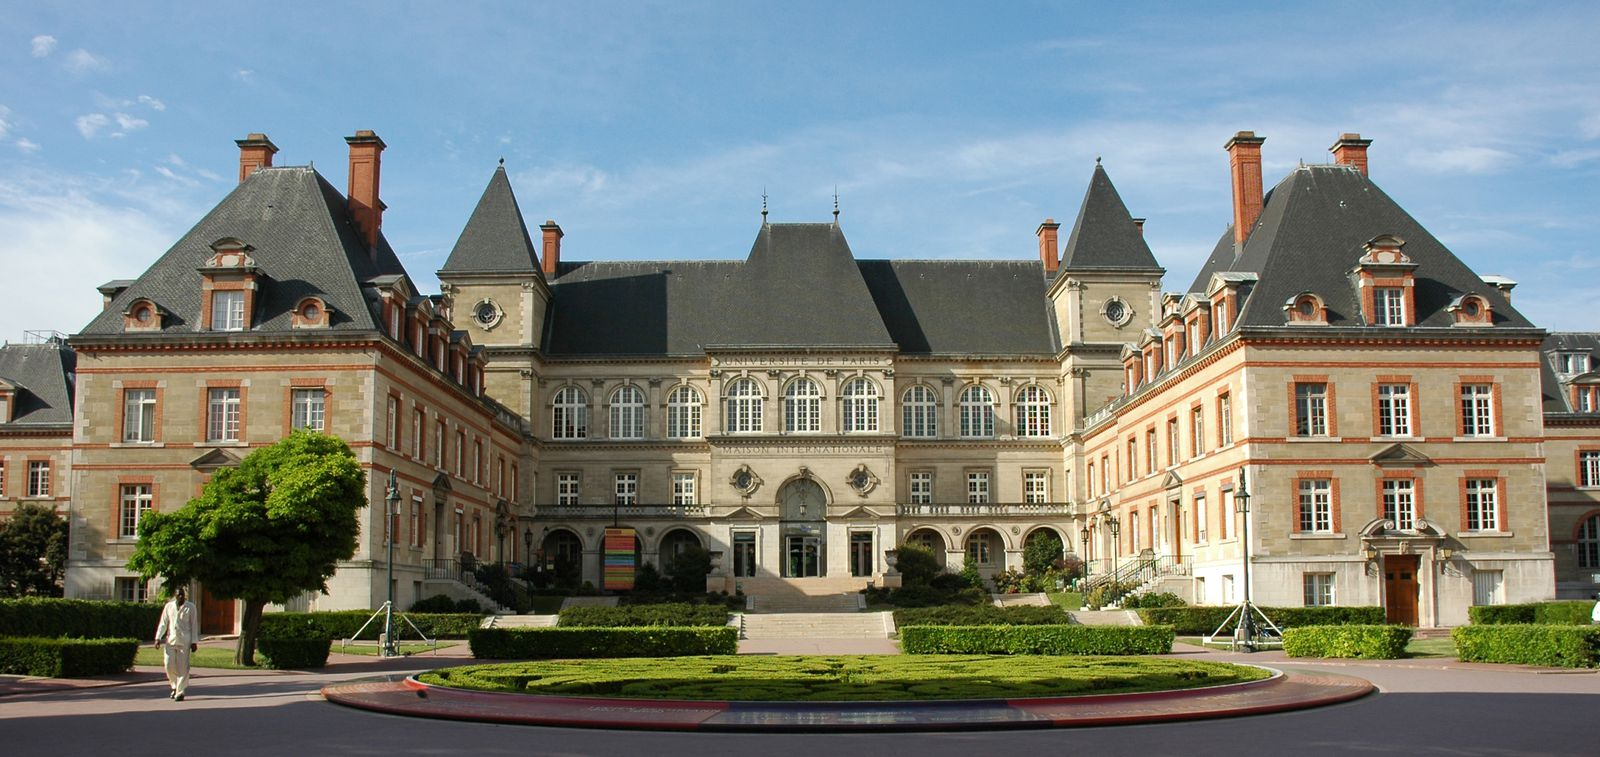 Cit internationale universitaire de paris parc - Maison des truffes paris ...